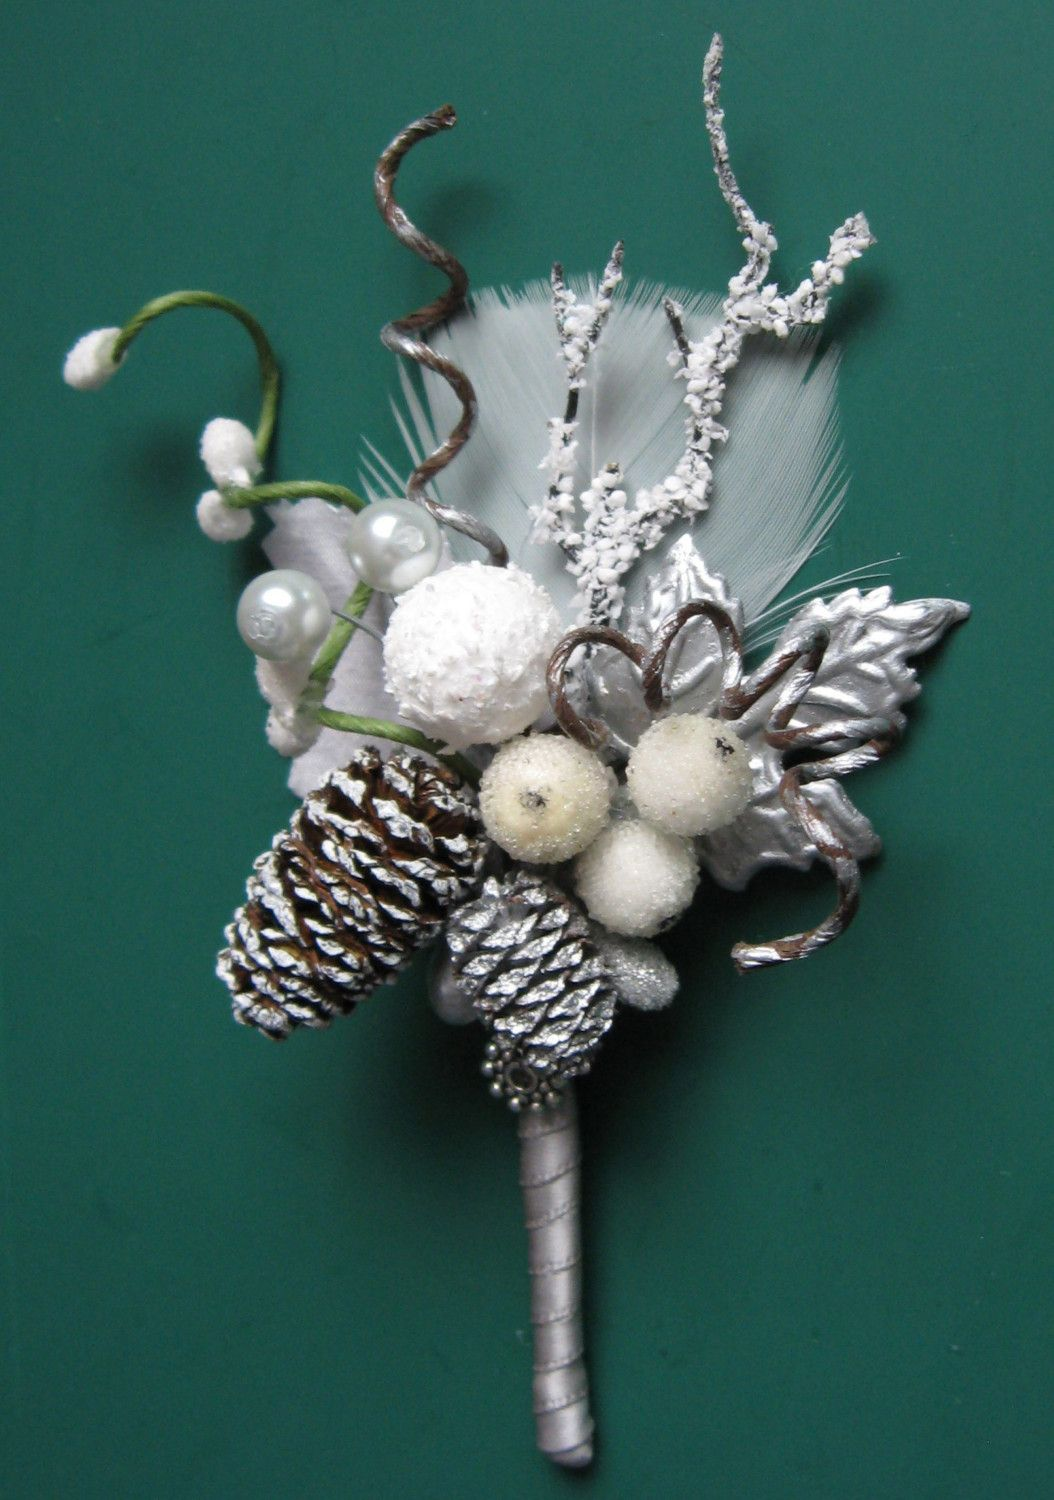 winter/christmas themed weddings | WONDERLAND Christmas/winter boutonniere by ericacavanagh on Etsy